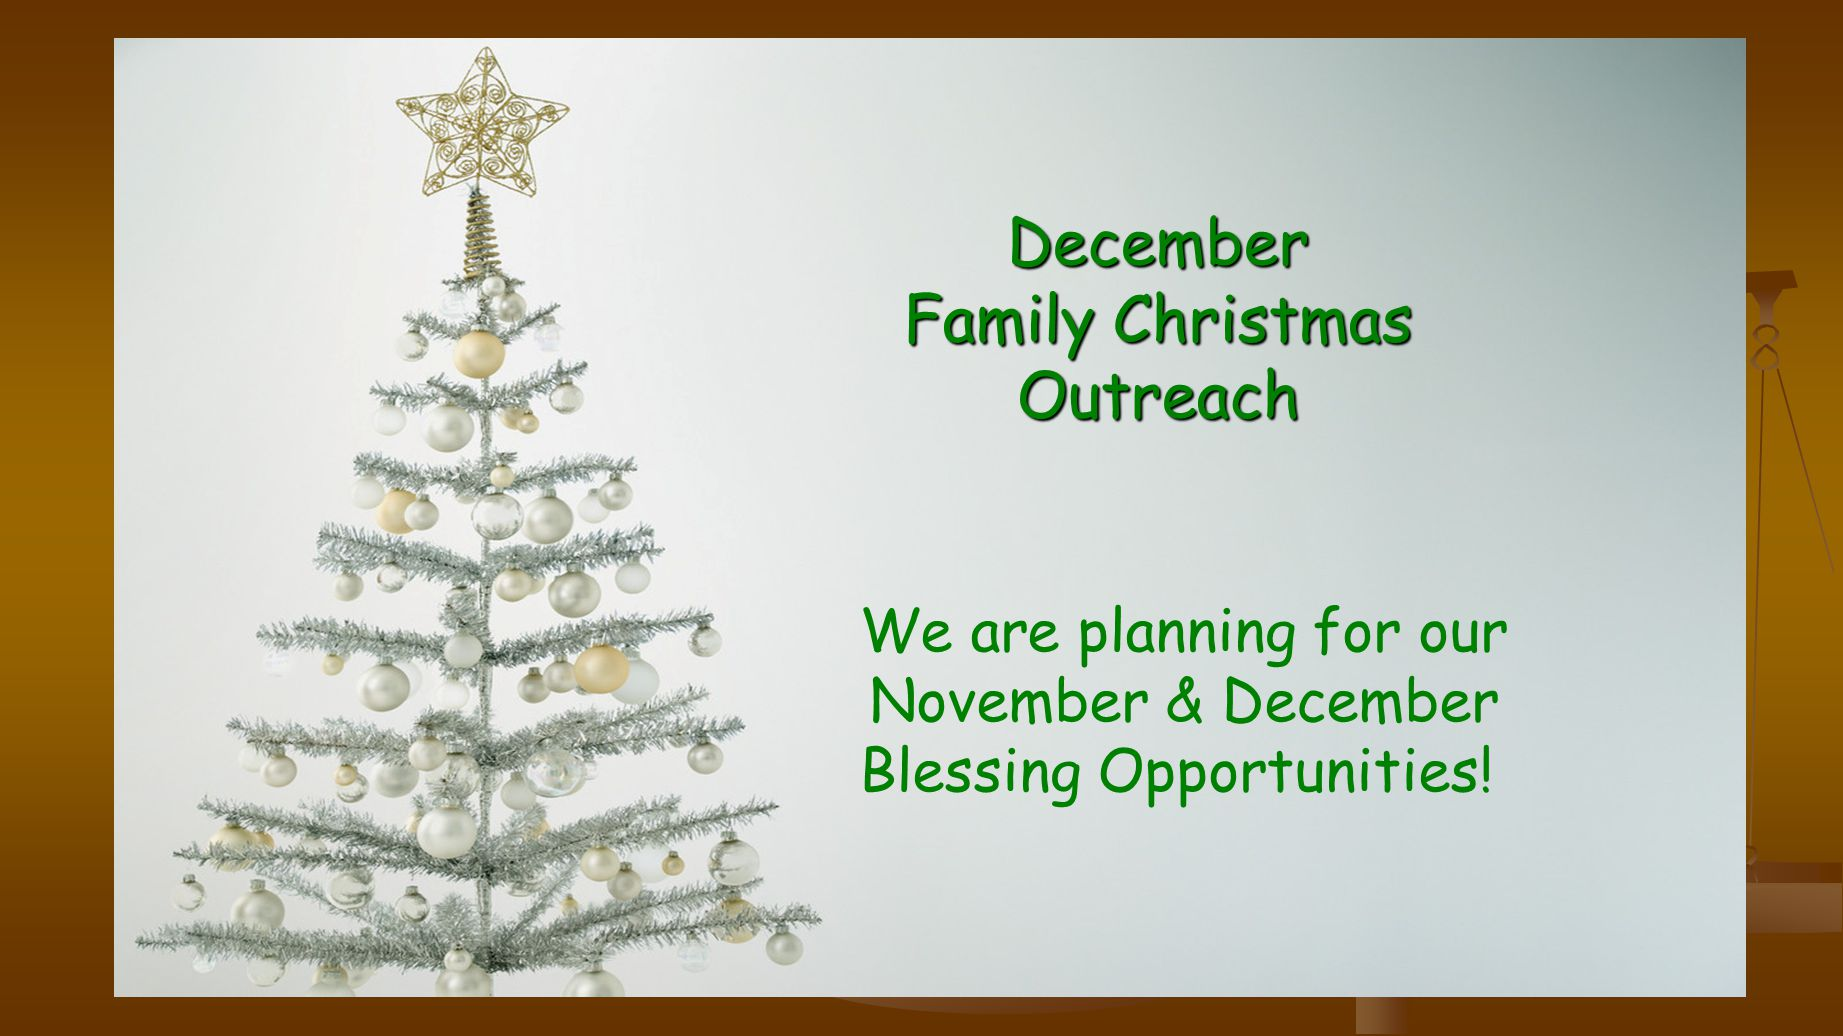 December Family Christmas Outreach We are planning for our November & December Blessing Opportunities!